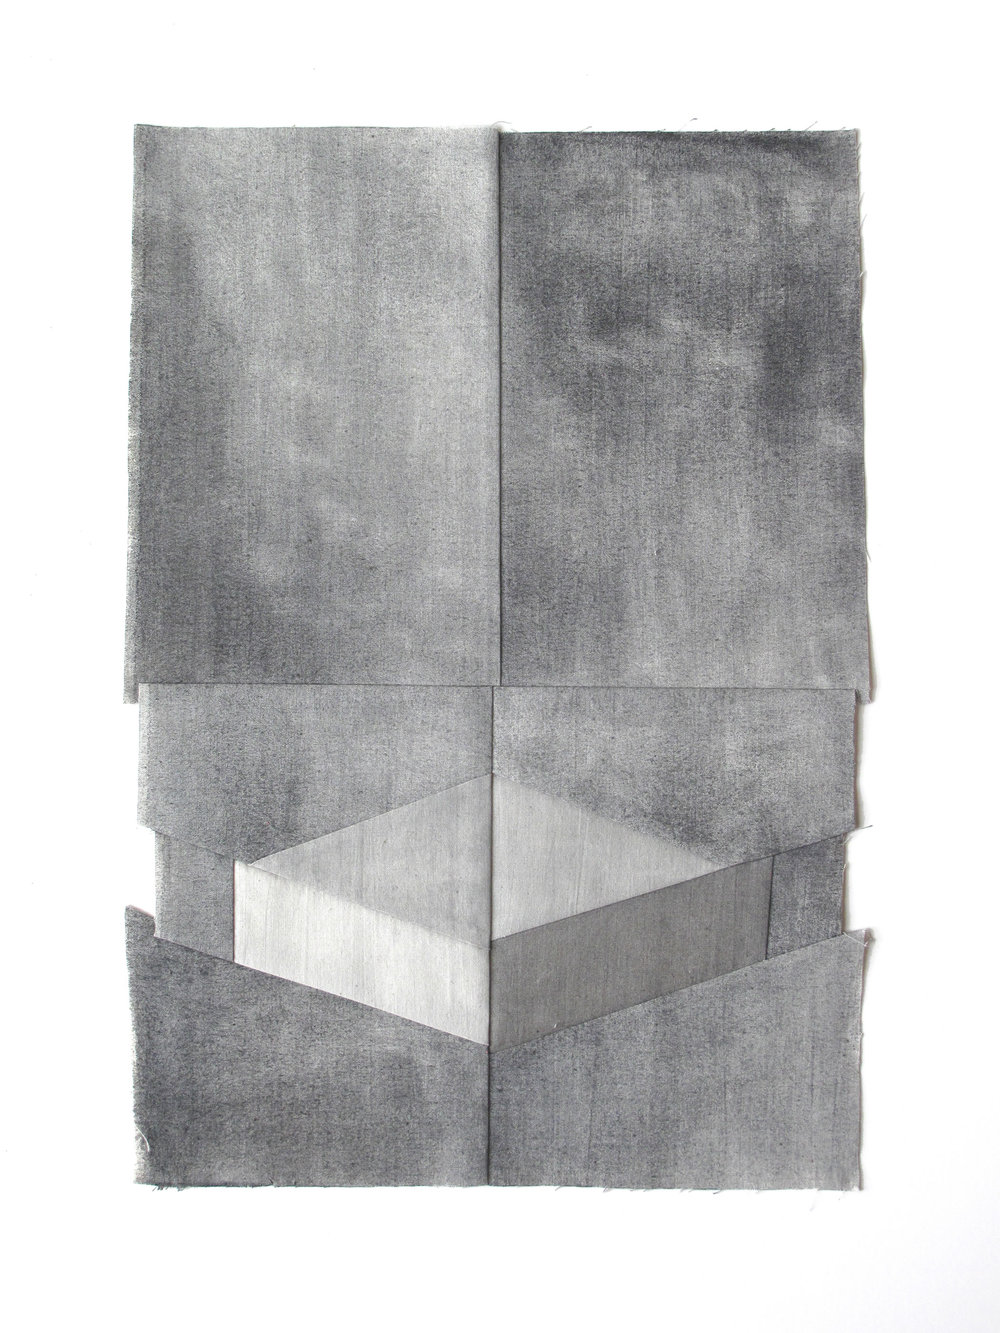 Teschner.Paver.2015.watercoloronmuslin.15x10inches.jpg